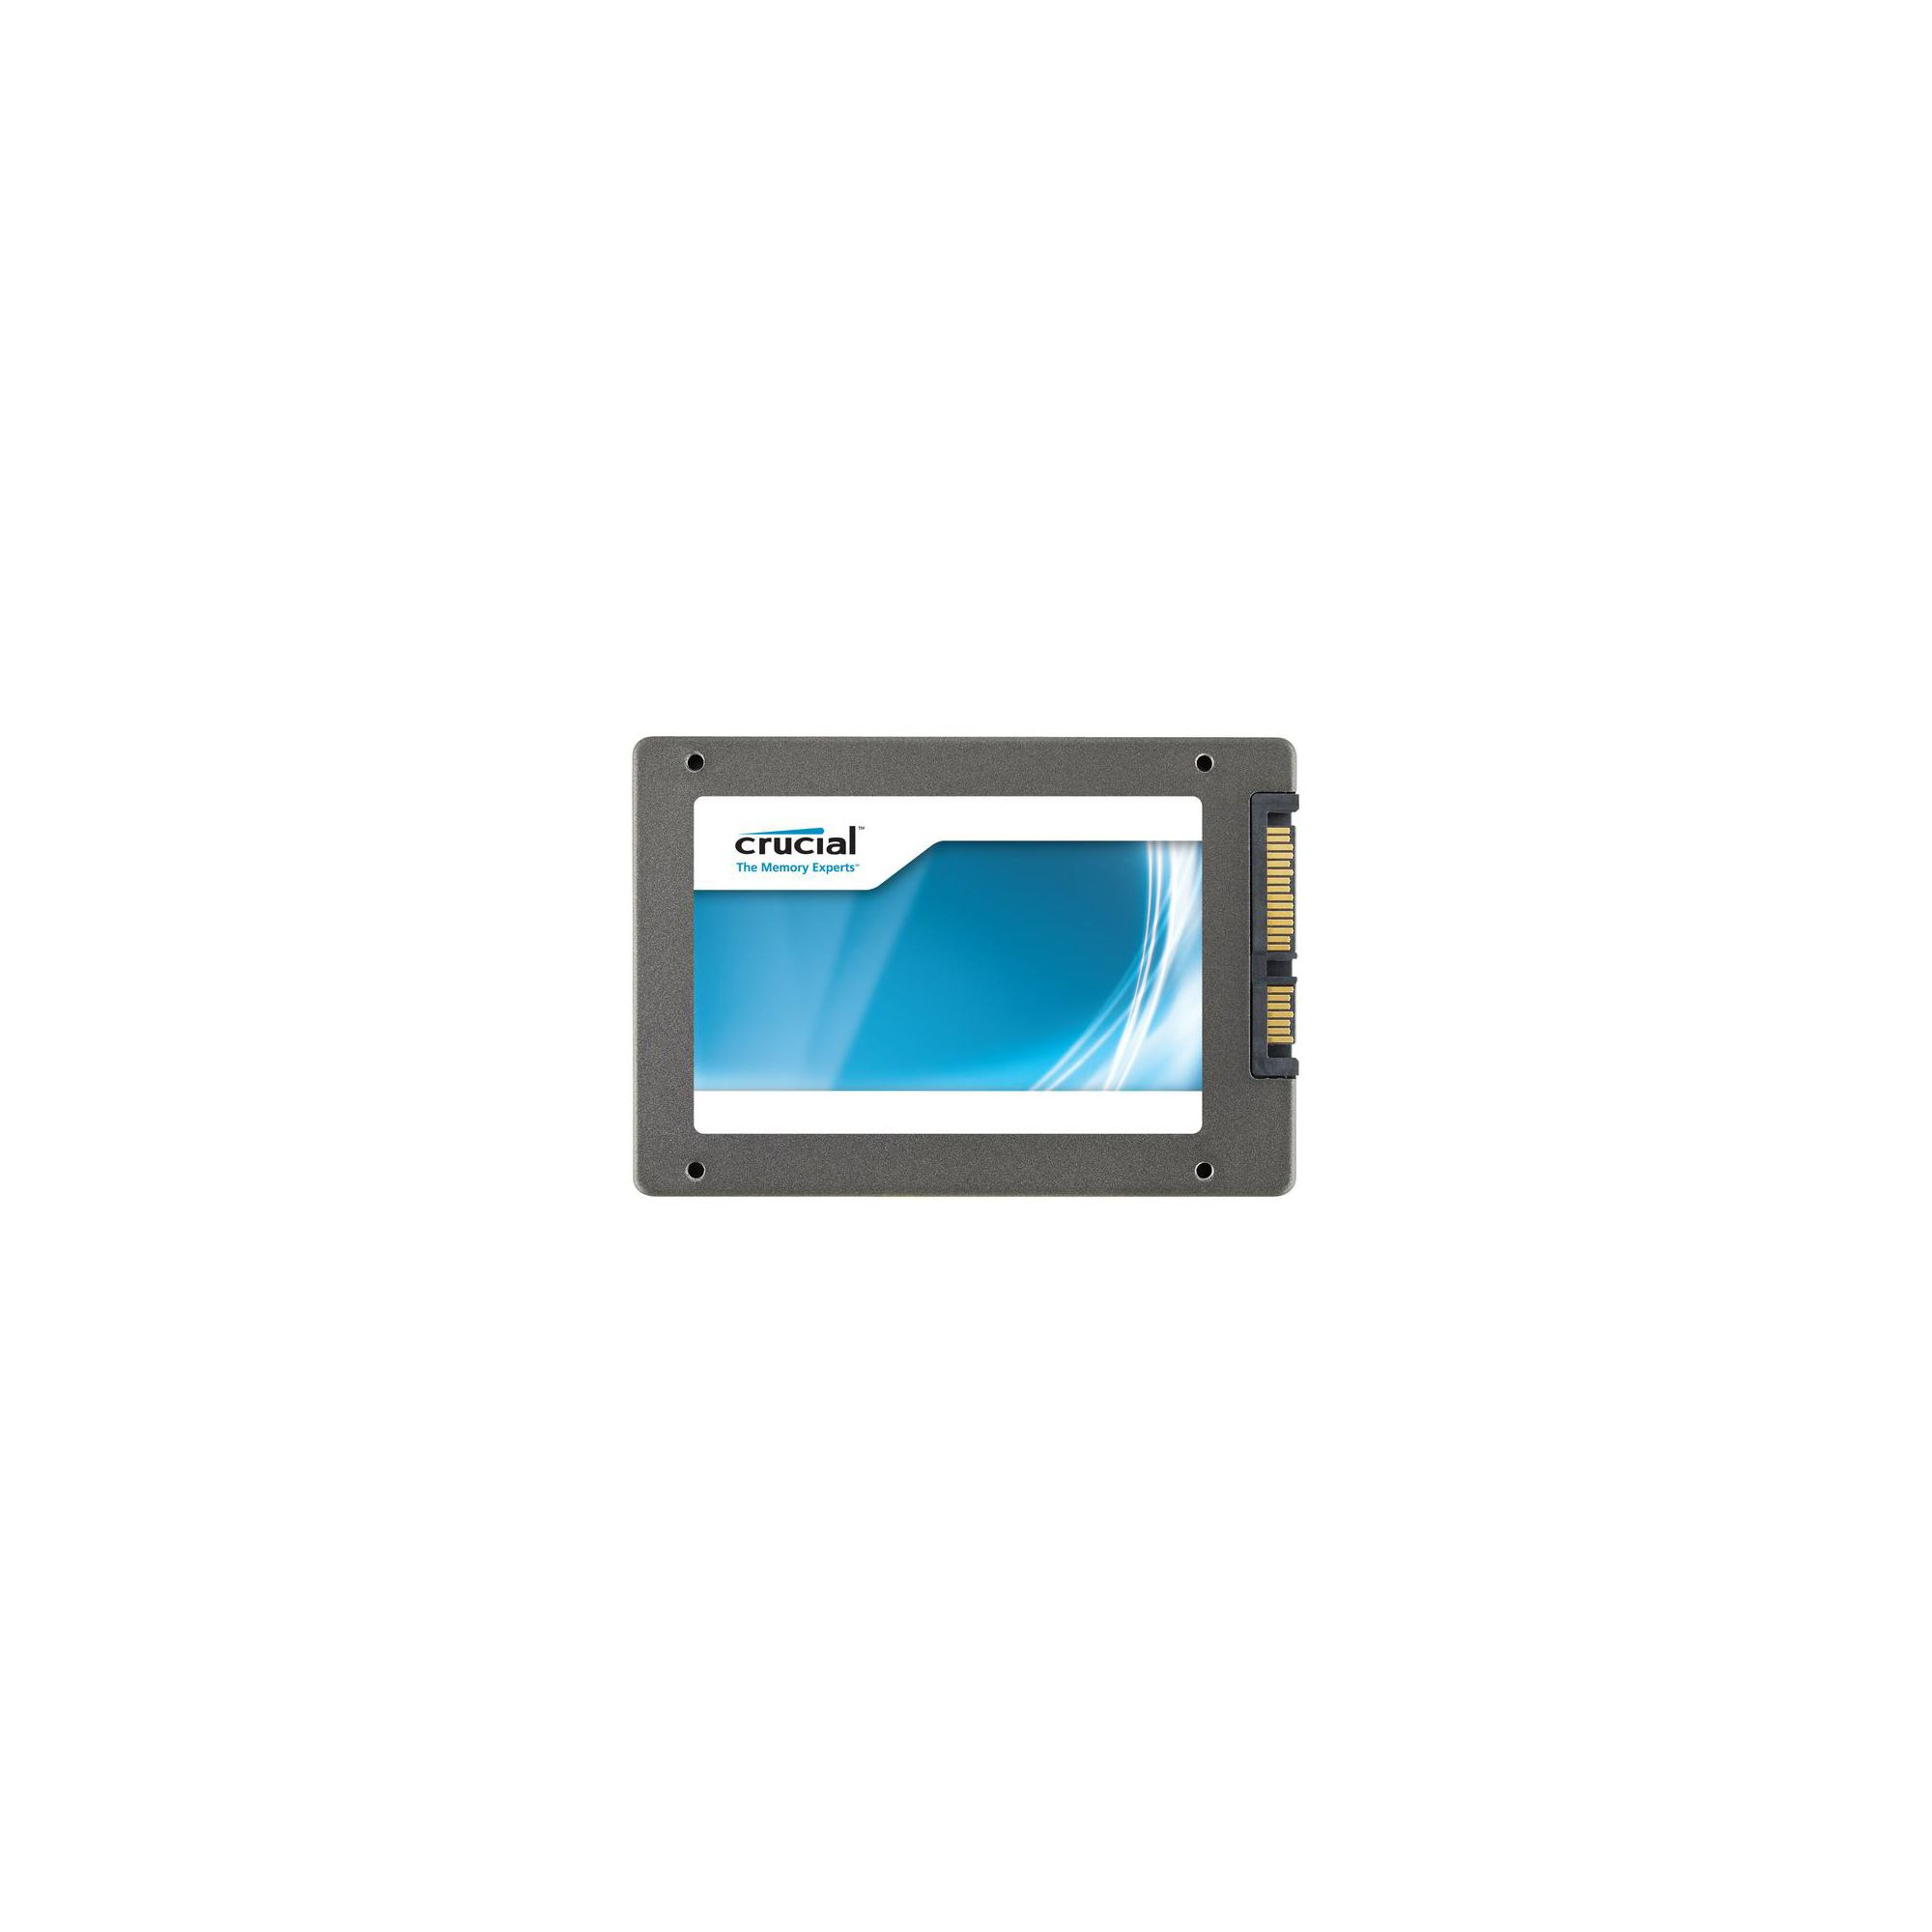 Crucial CT512M4 M4 512GB Solid State Drive 6.0Gb/s SATA (Internal) at Tesco Direct